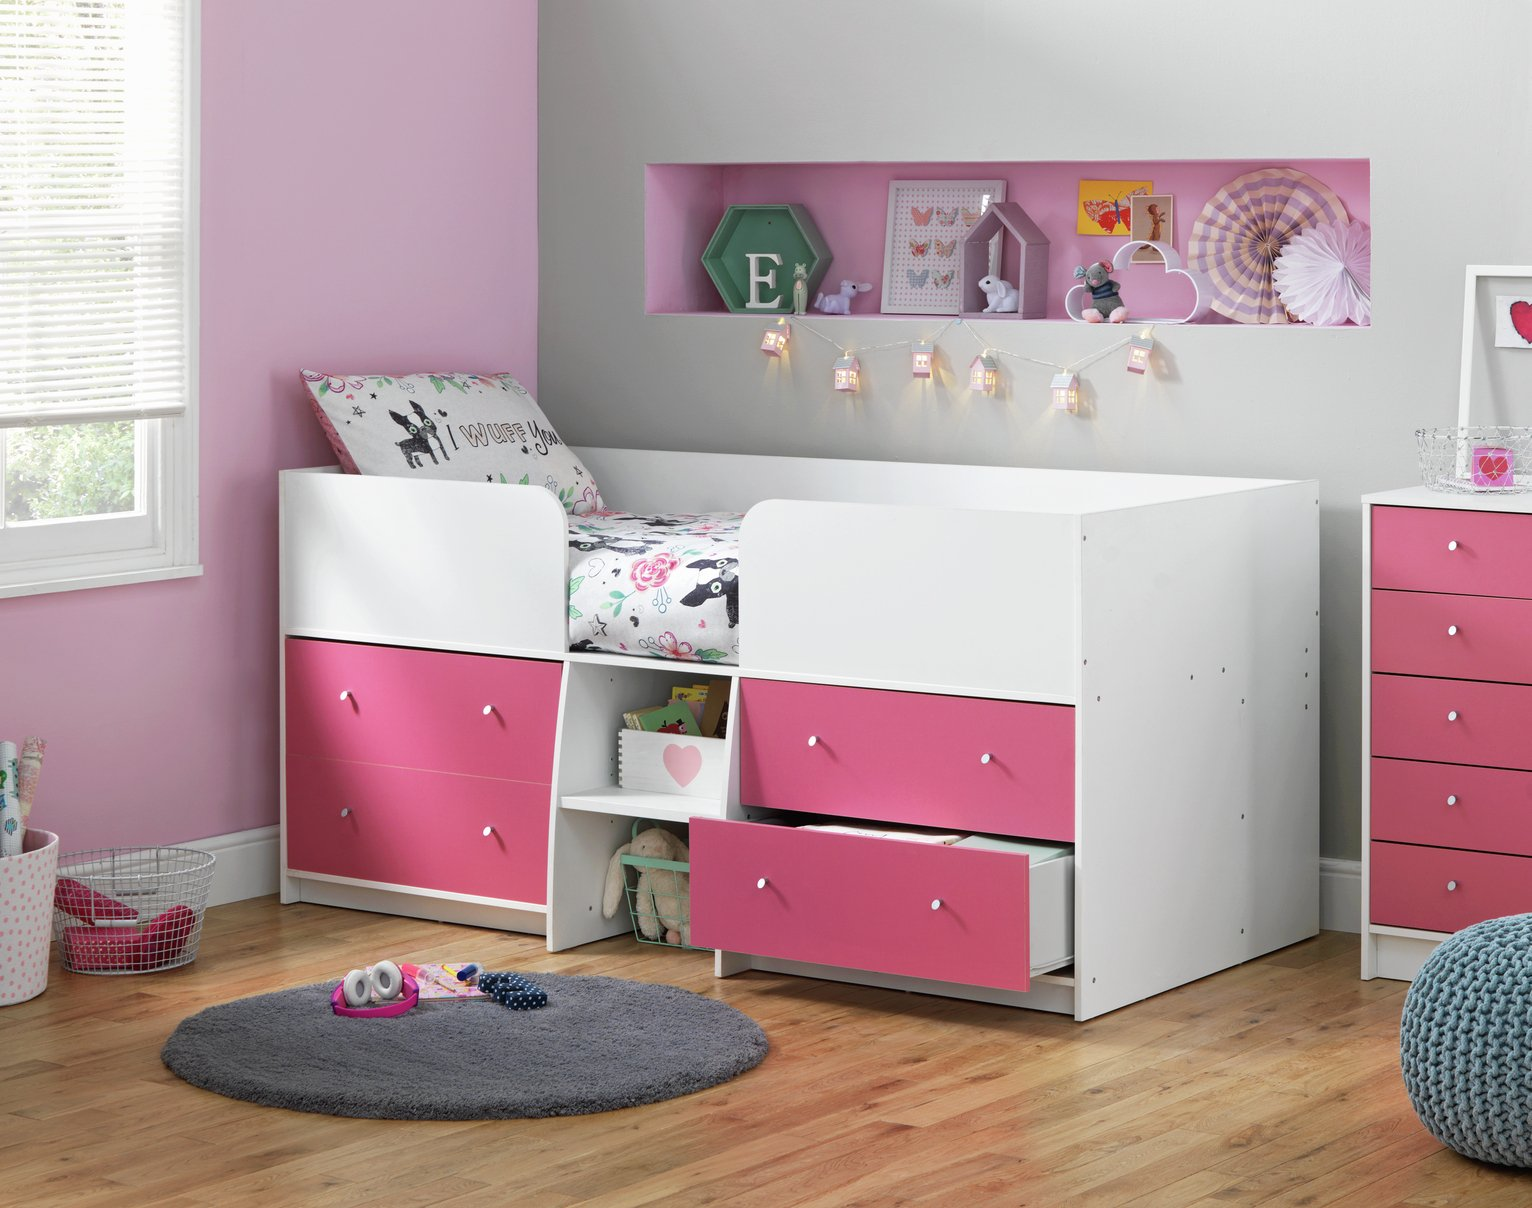 Argos Home Malibu Pink & White Shorty Mid Sleeper